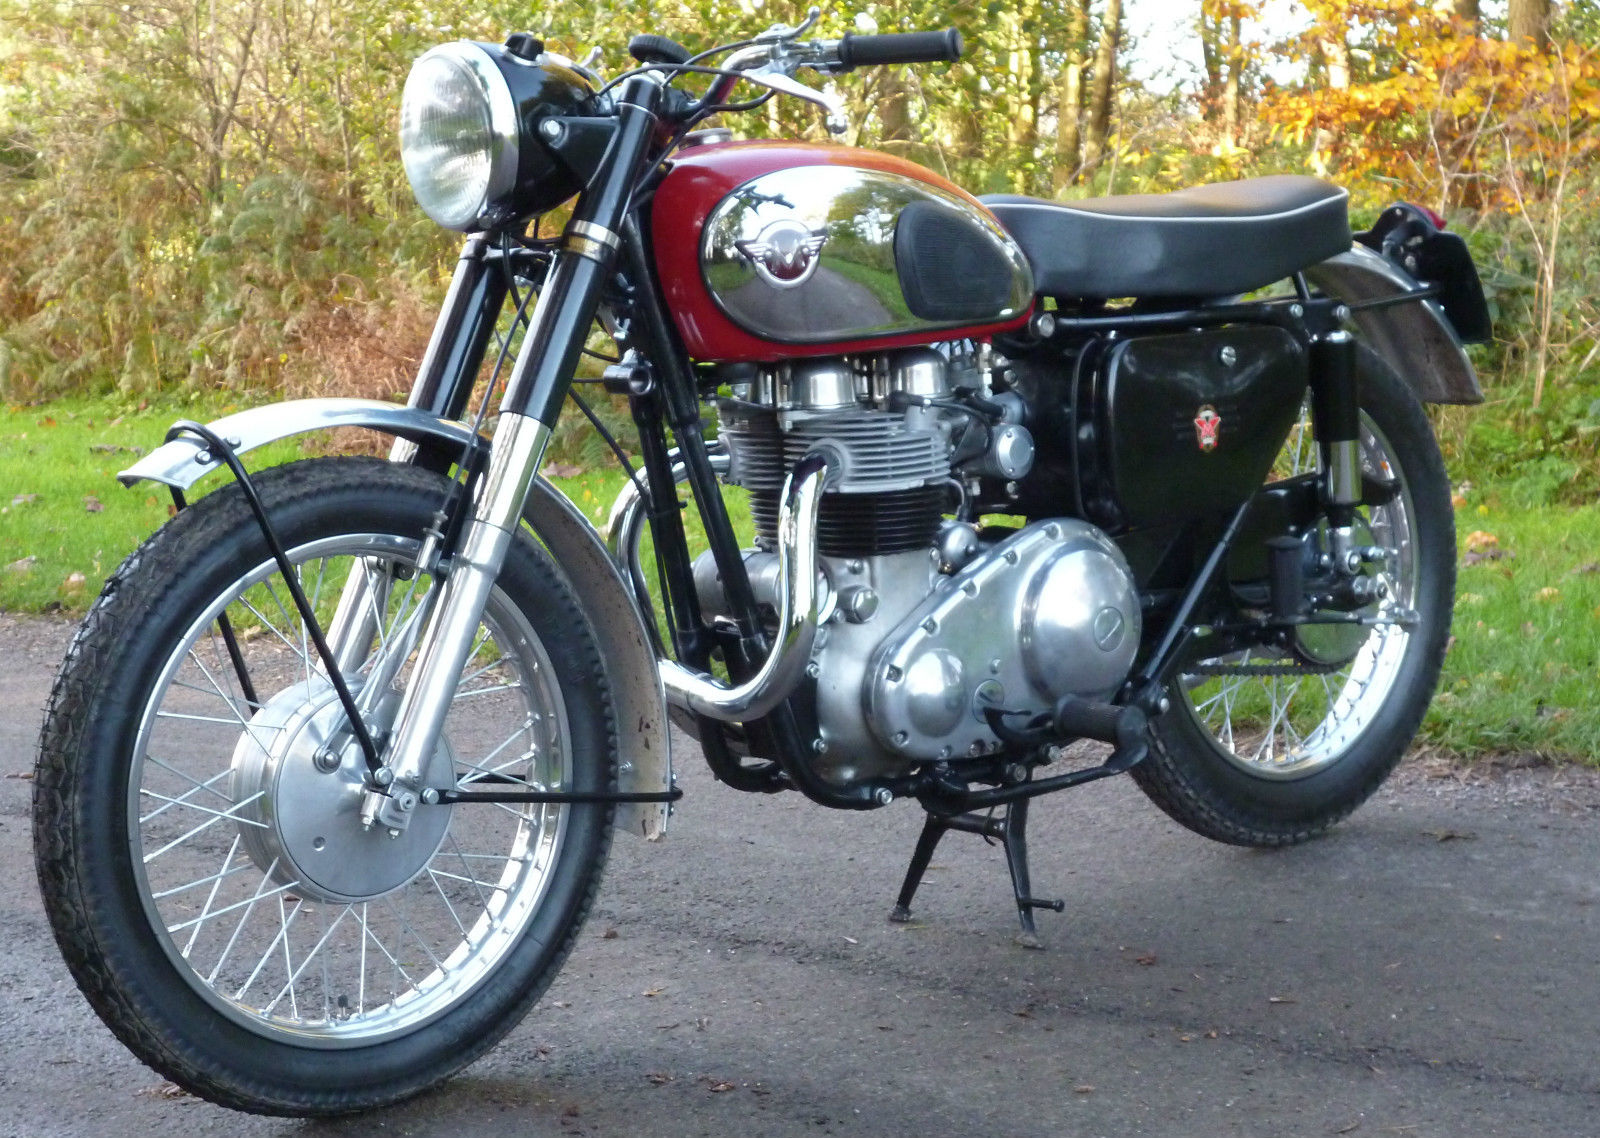 Matchless g 11 csr for sale 1958 on car and classic uk c544589 - Matchless G12 1960